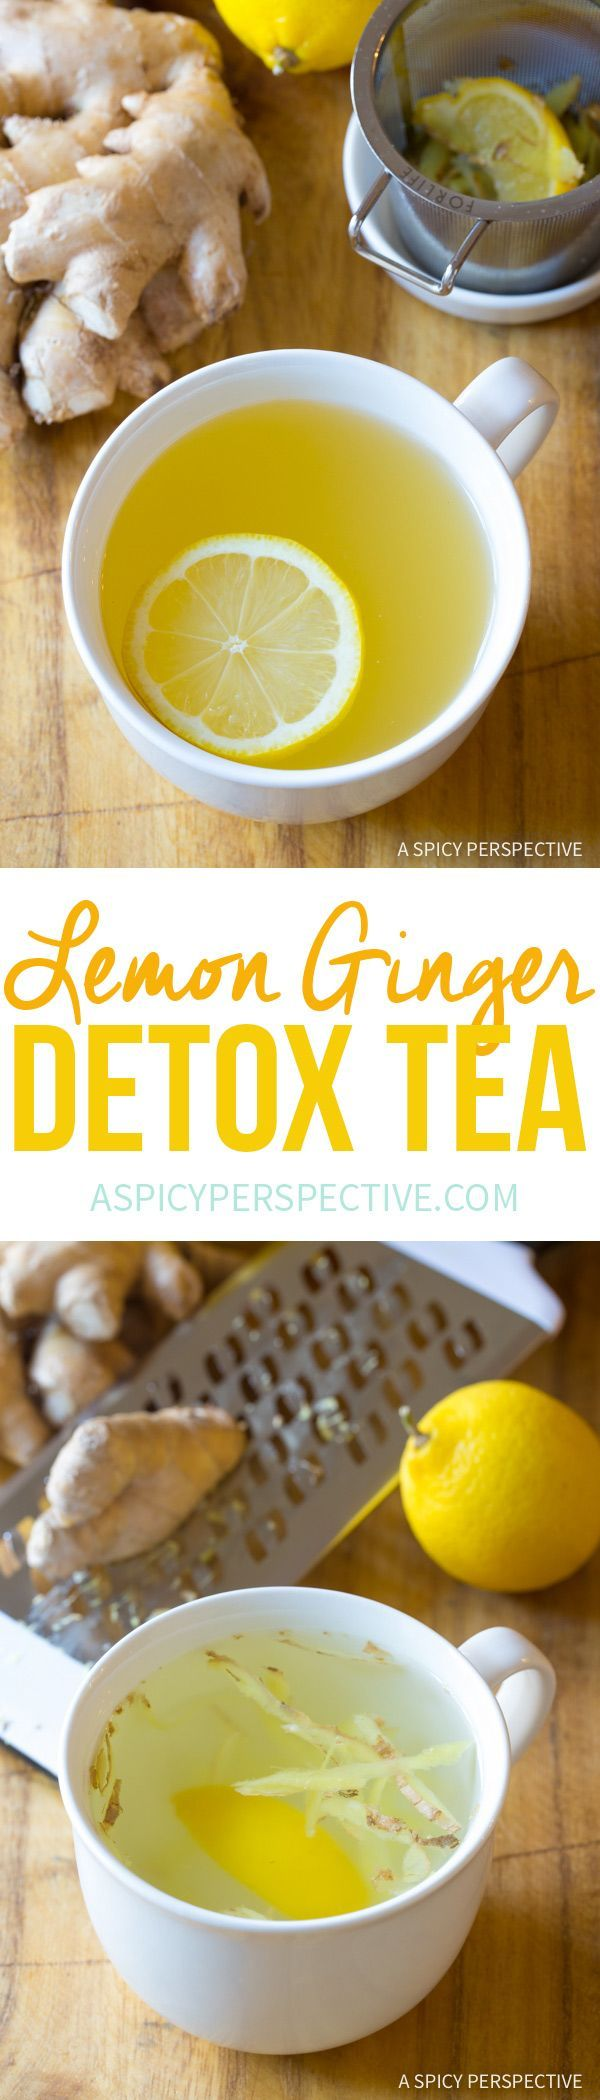 Lemon, Ginger and.. Water!